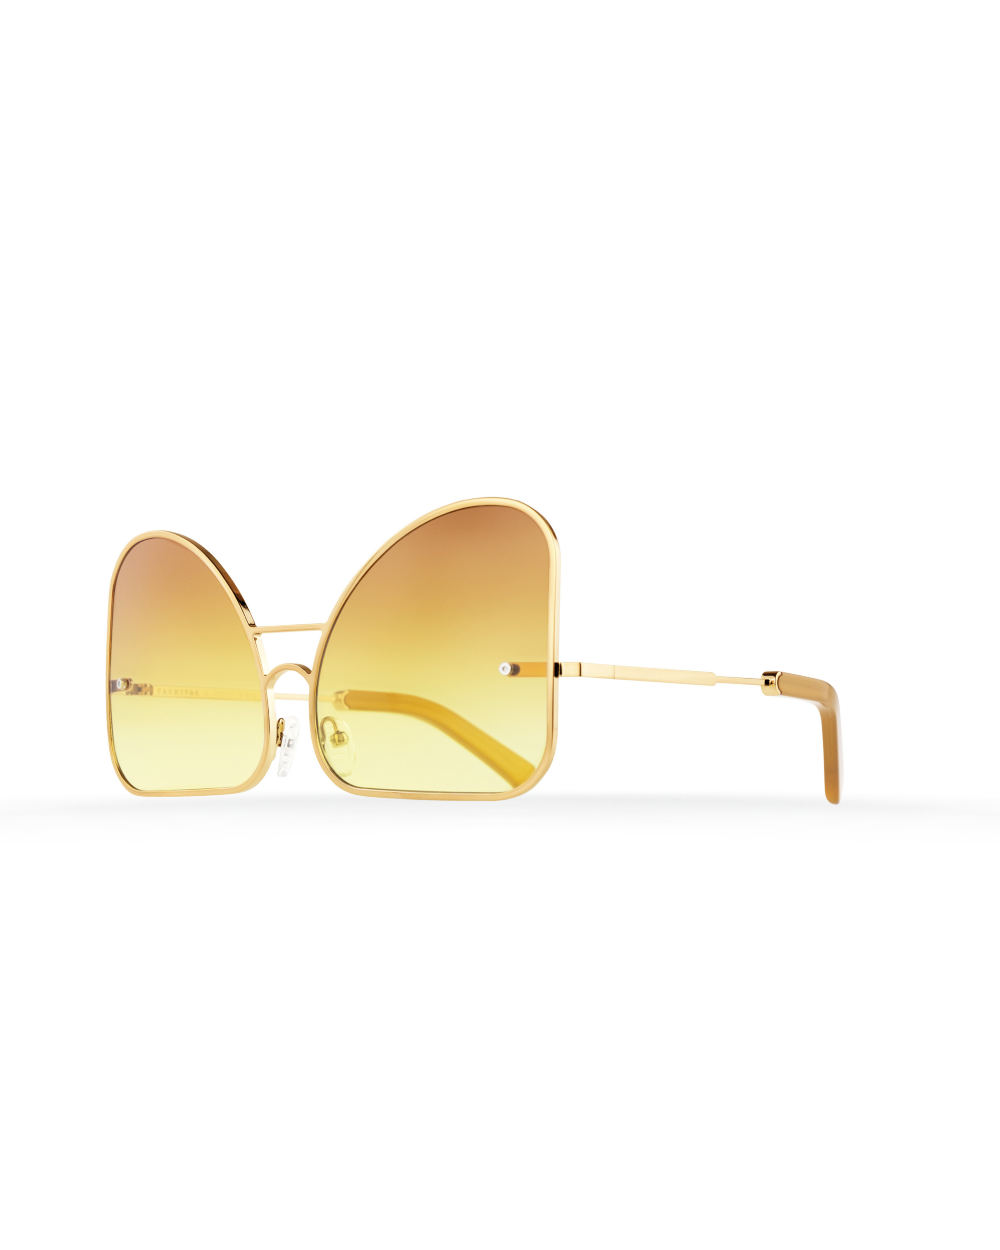 Inverted yellow gradient lenses aviator Model 2. Golden metal frame